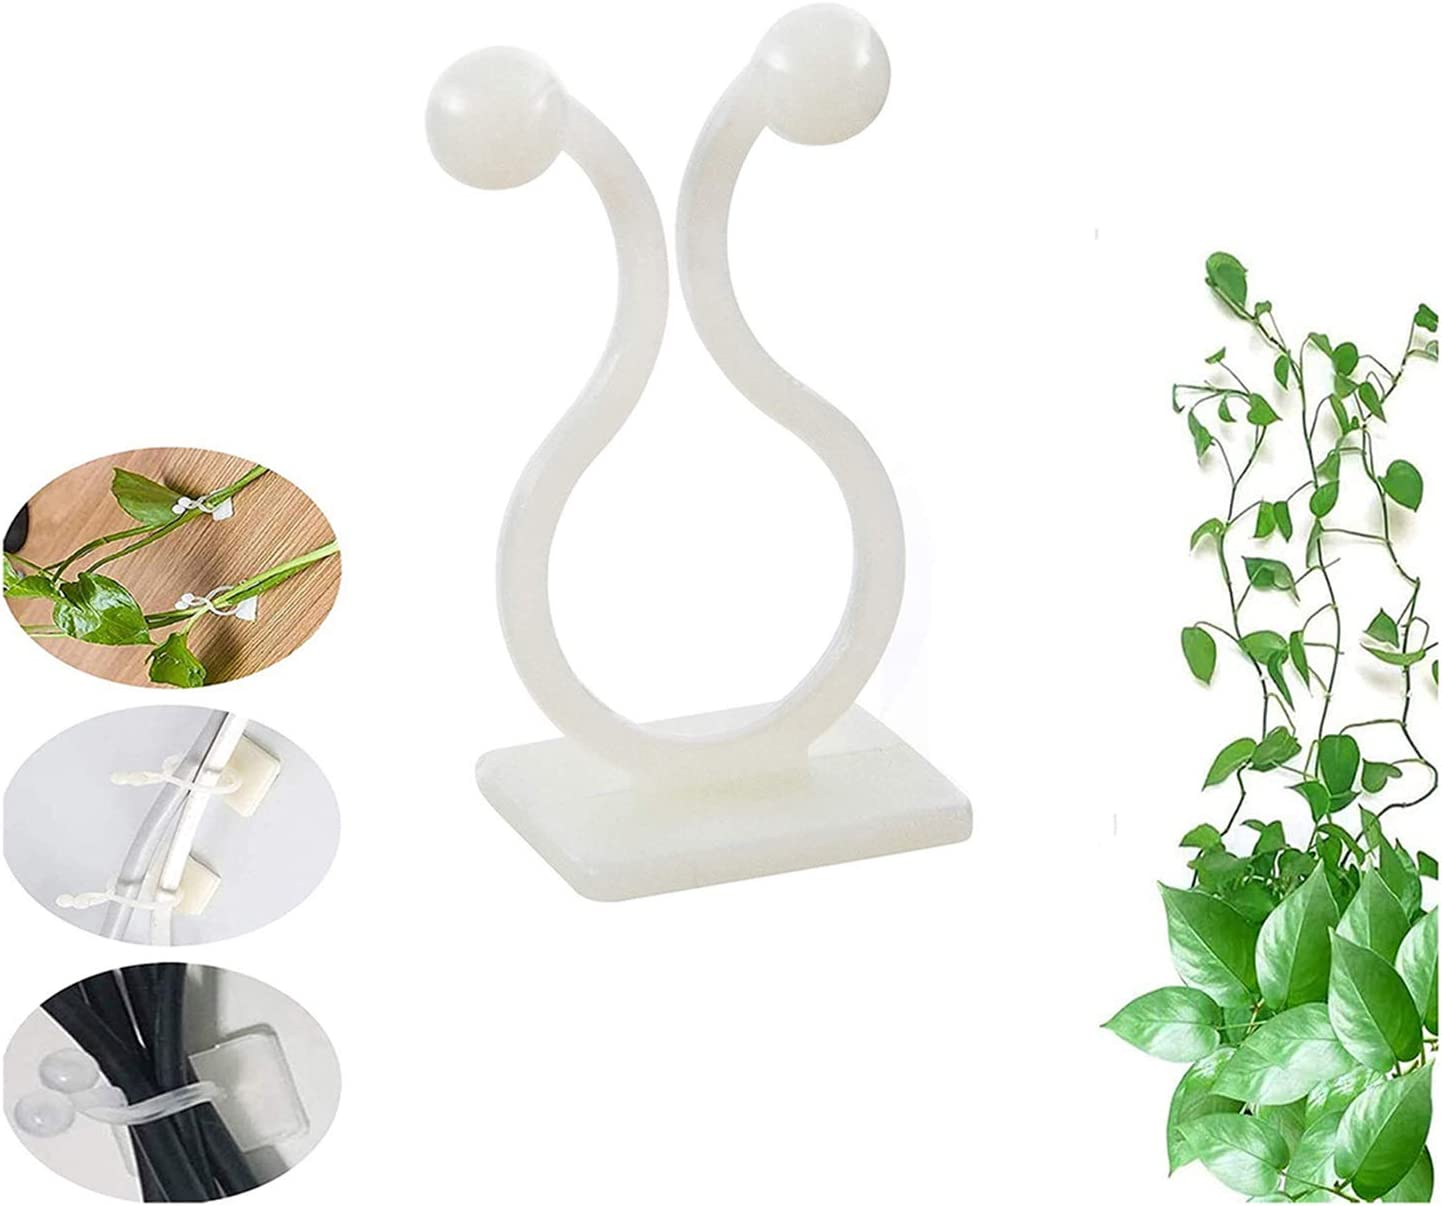 Nwvuop 100Pcs Plant Climbing Wall Fixer Garden Vegetable Plant/Support Clips Self-Adhesive Sticky Hook for Gardening Work White